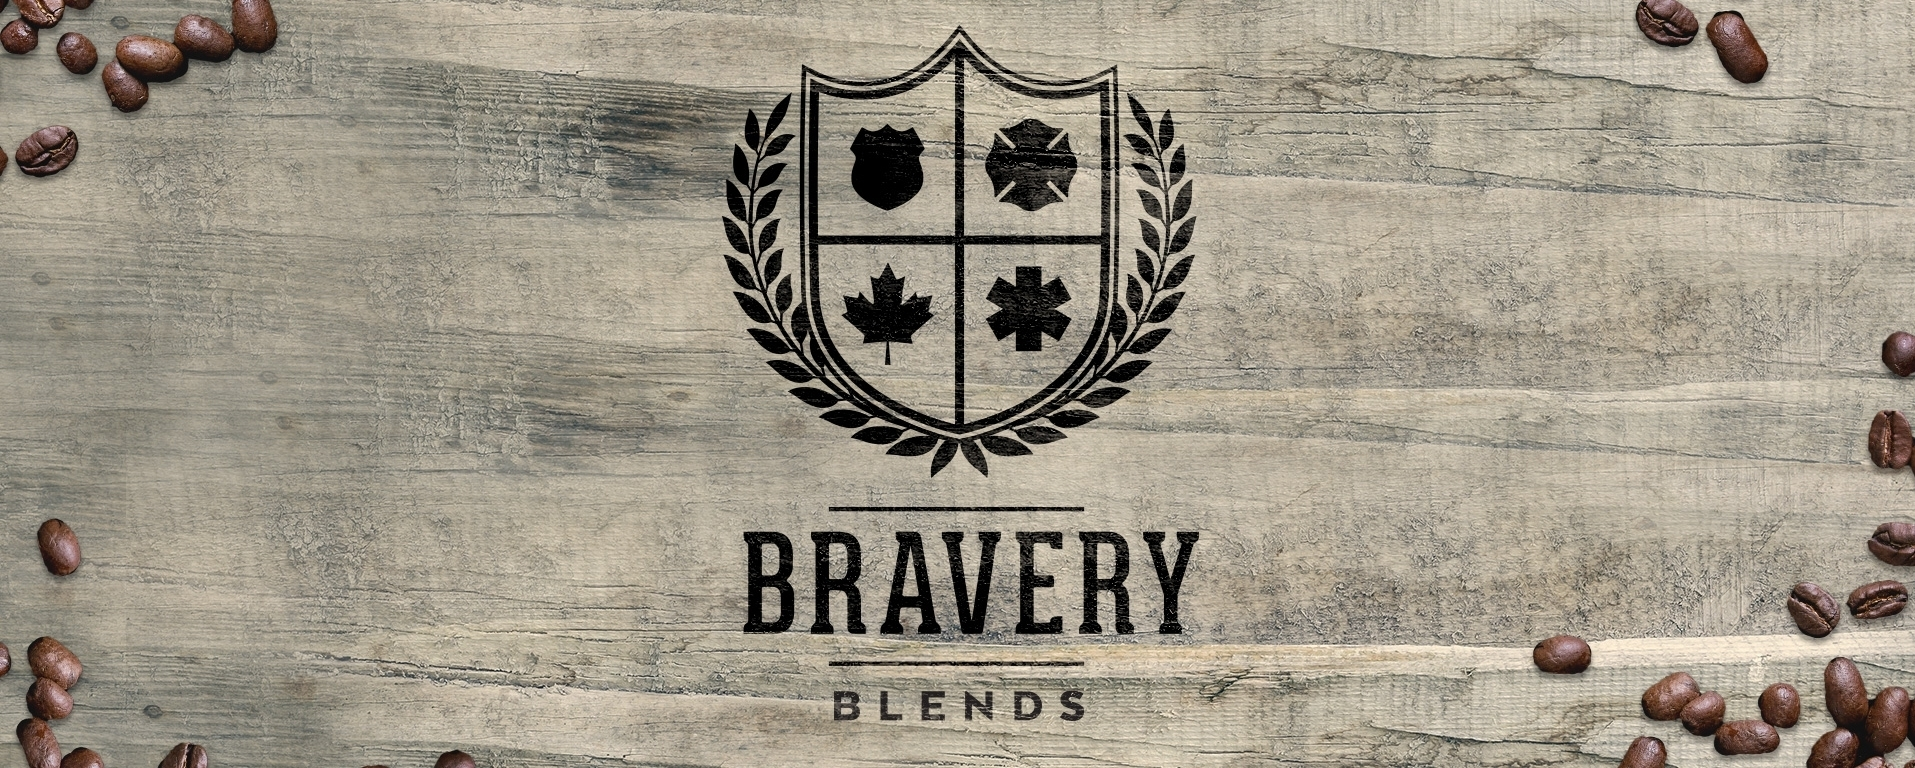 Bravery Blends Coffee - Bravery Blends is a social enterprise with a mission to raise capital through the sale of high-quality coffee beans to increase awareness of PTSD in first responders and expand access to treatment for these unsung heroes. After months of testing coffee (which lead to many sleepless nights), we are thrilled to be sharing Bravery Blends signature roast with you. It is a proprietary blend of two of our favourite organic, fair trade coffee beans - we know you will love it as much as we do!